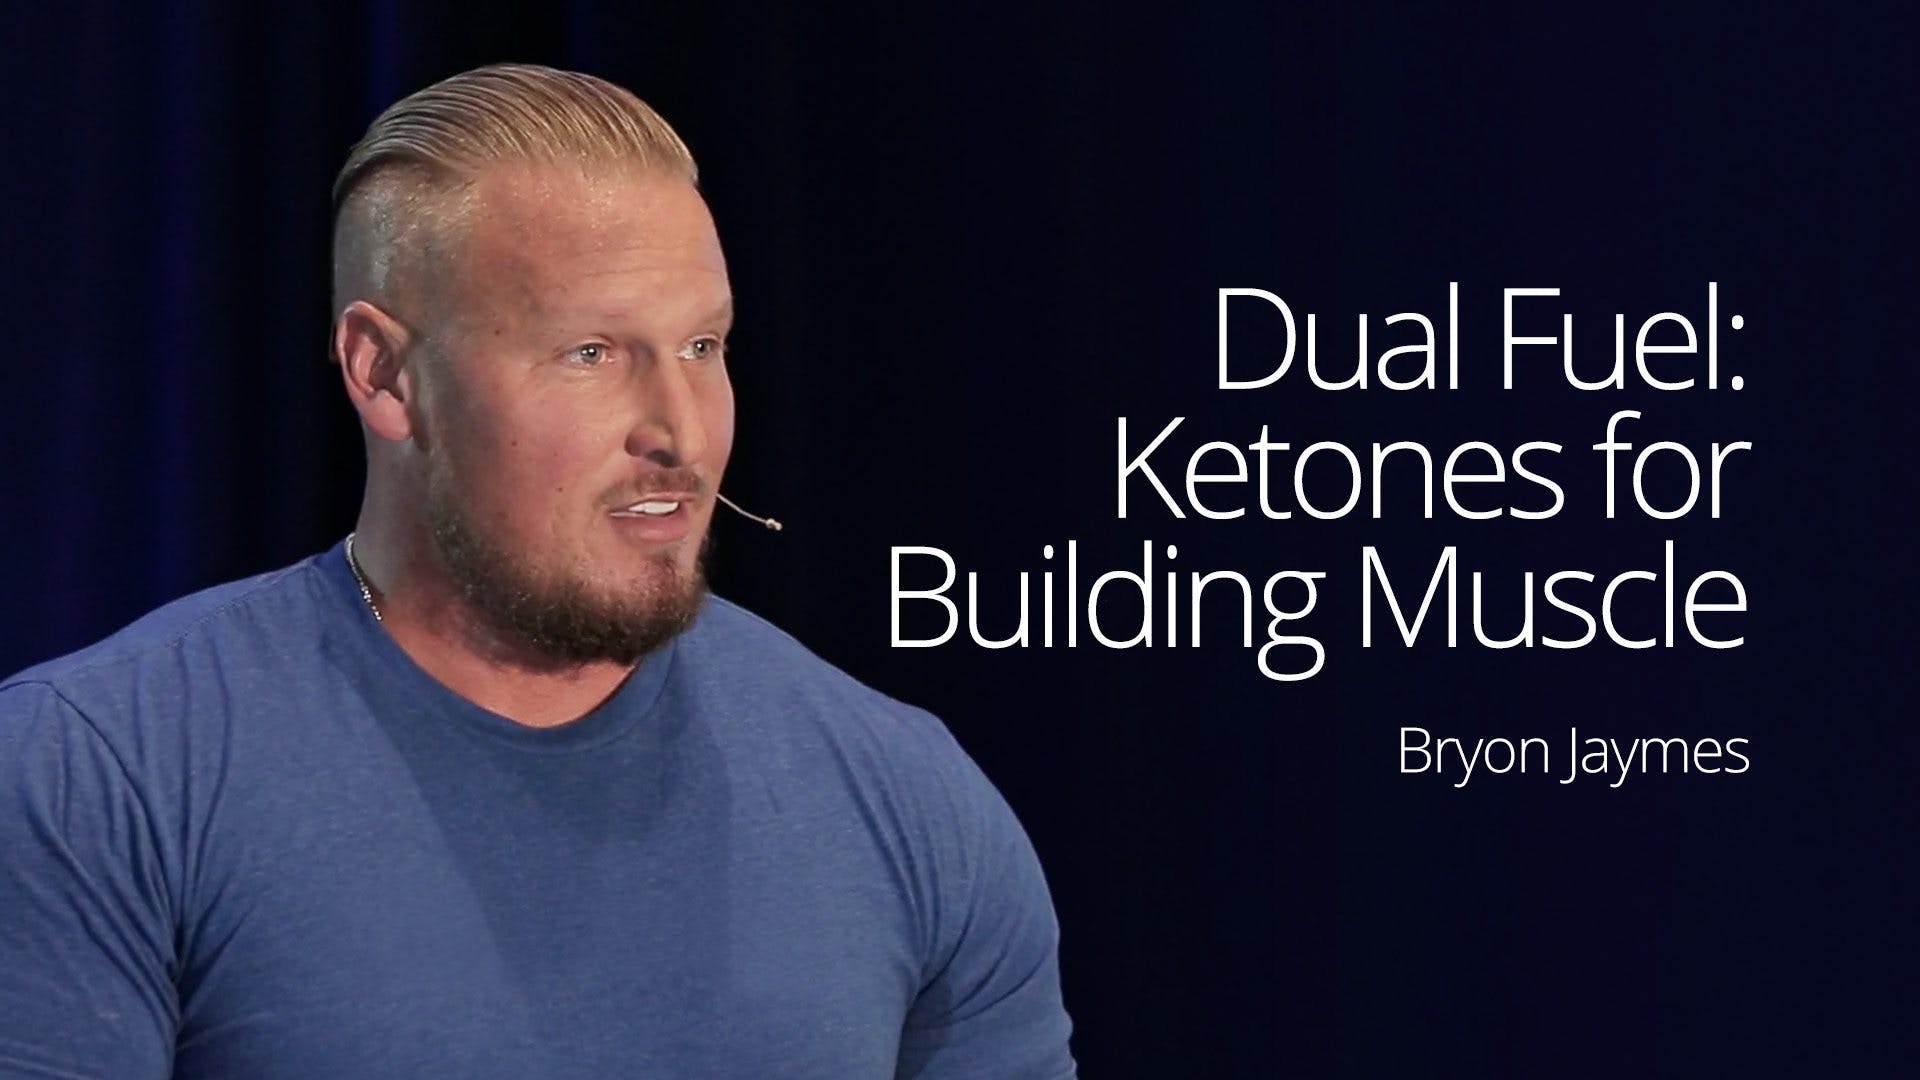 How to Use Ketones for Building Muscle and Feeling Good